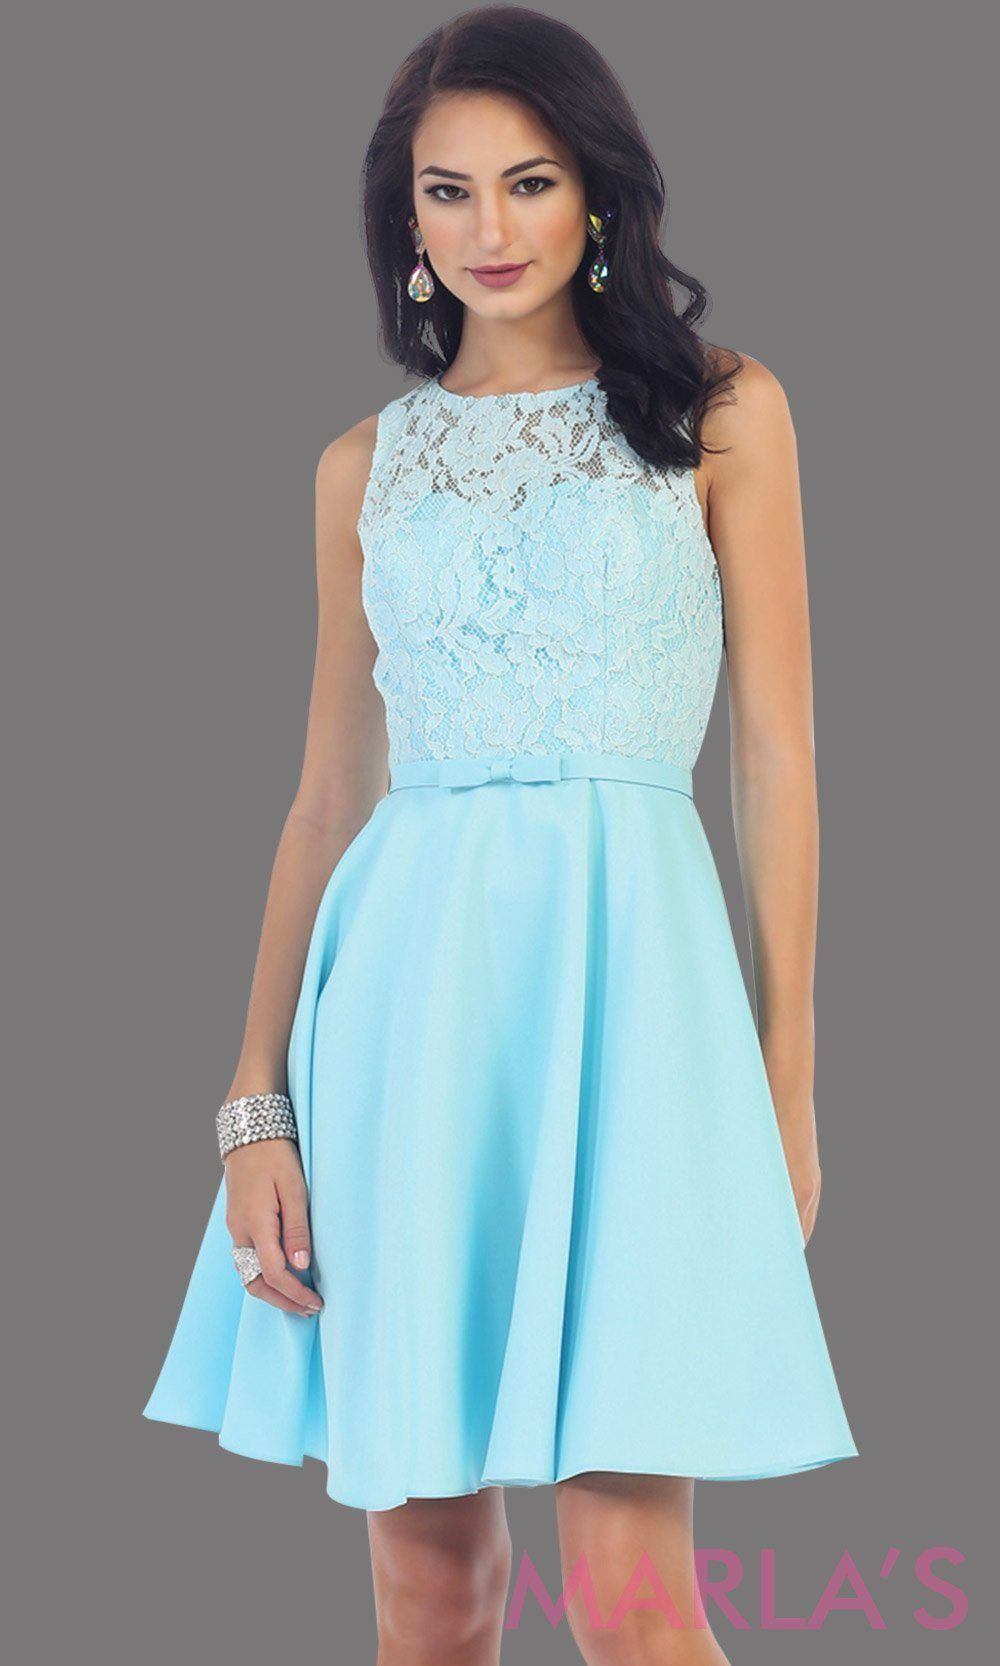 8da7e1dcf16 Short simple semi formal aqua blue dress with lace bodice and satin skirt.  Light blue dress is perfect for grade 8 grad